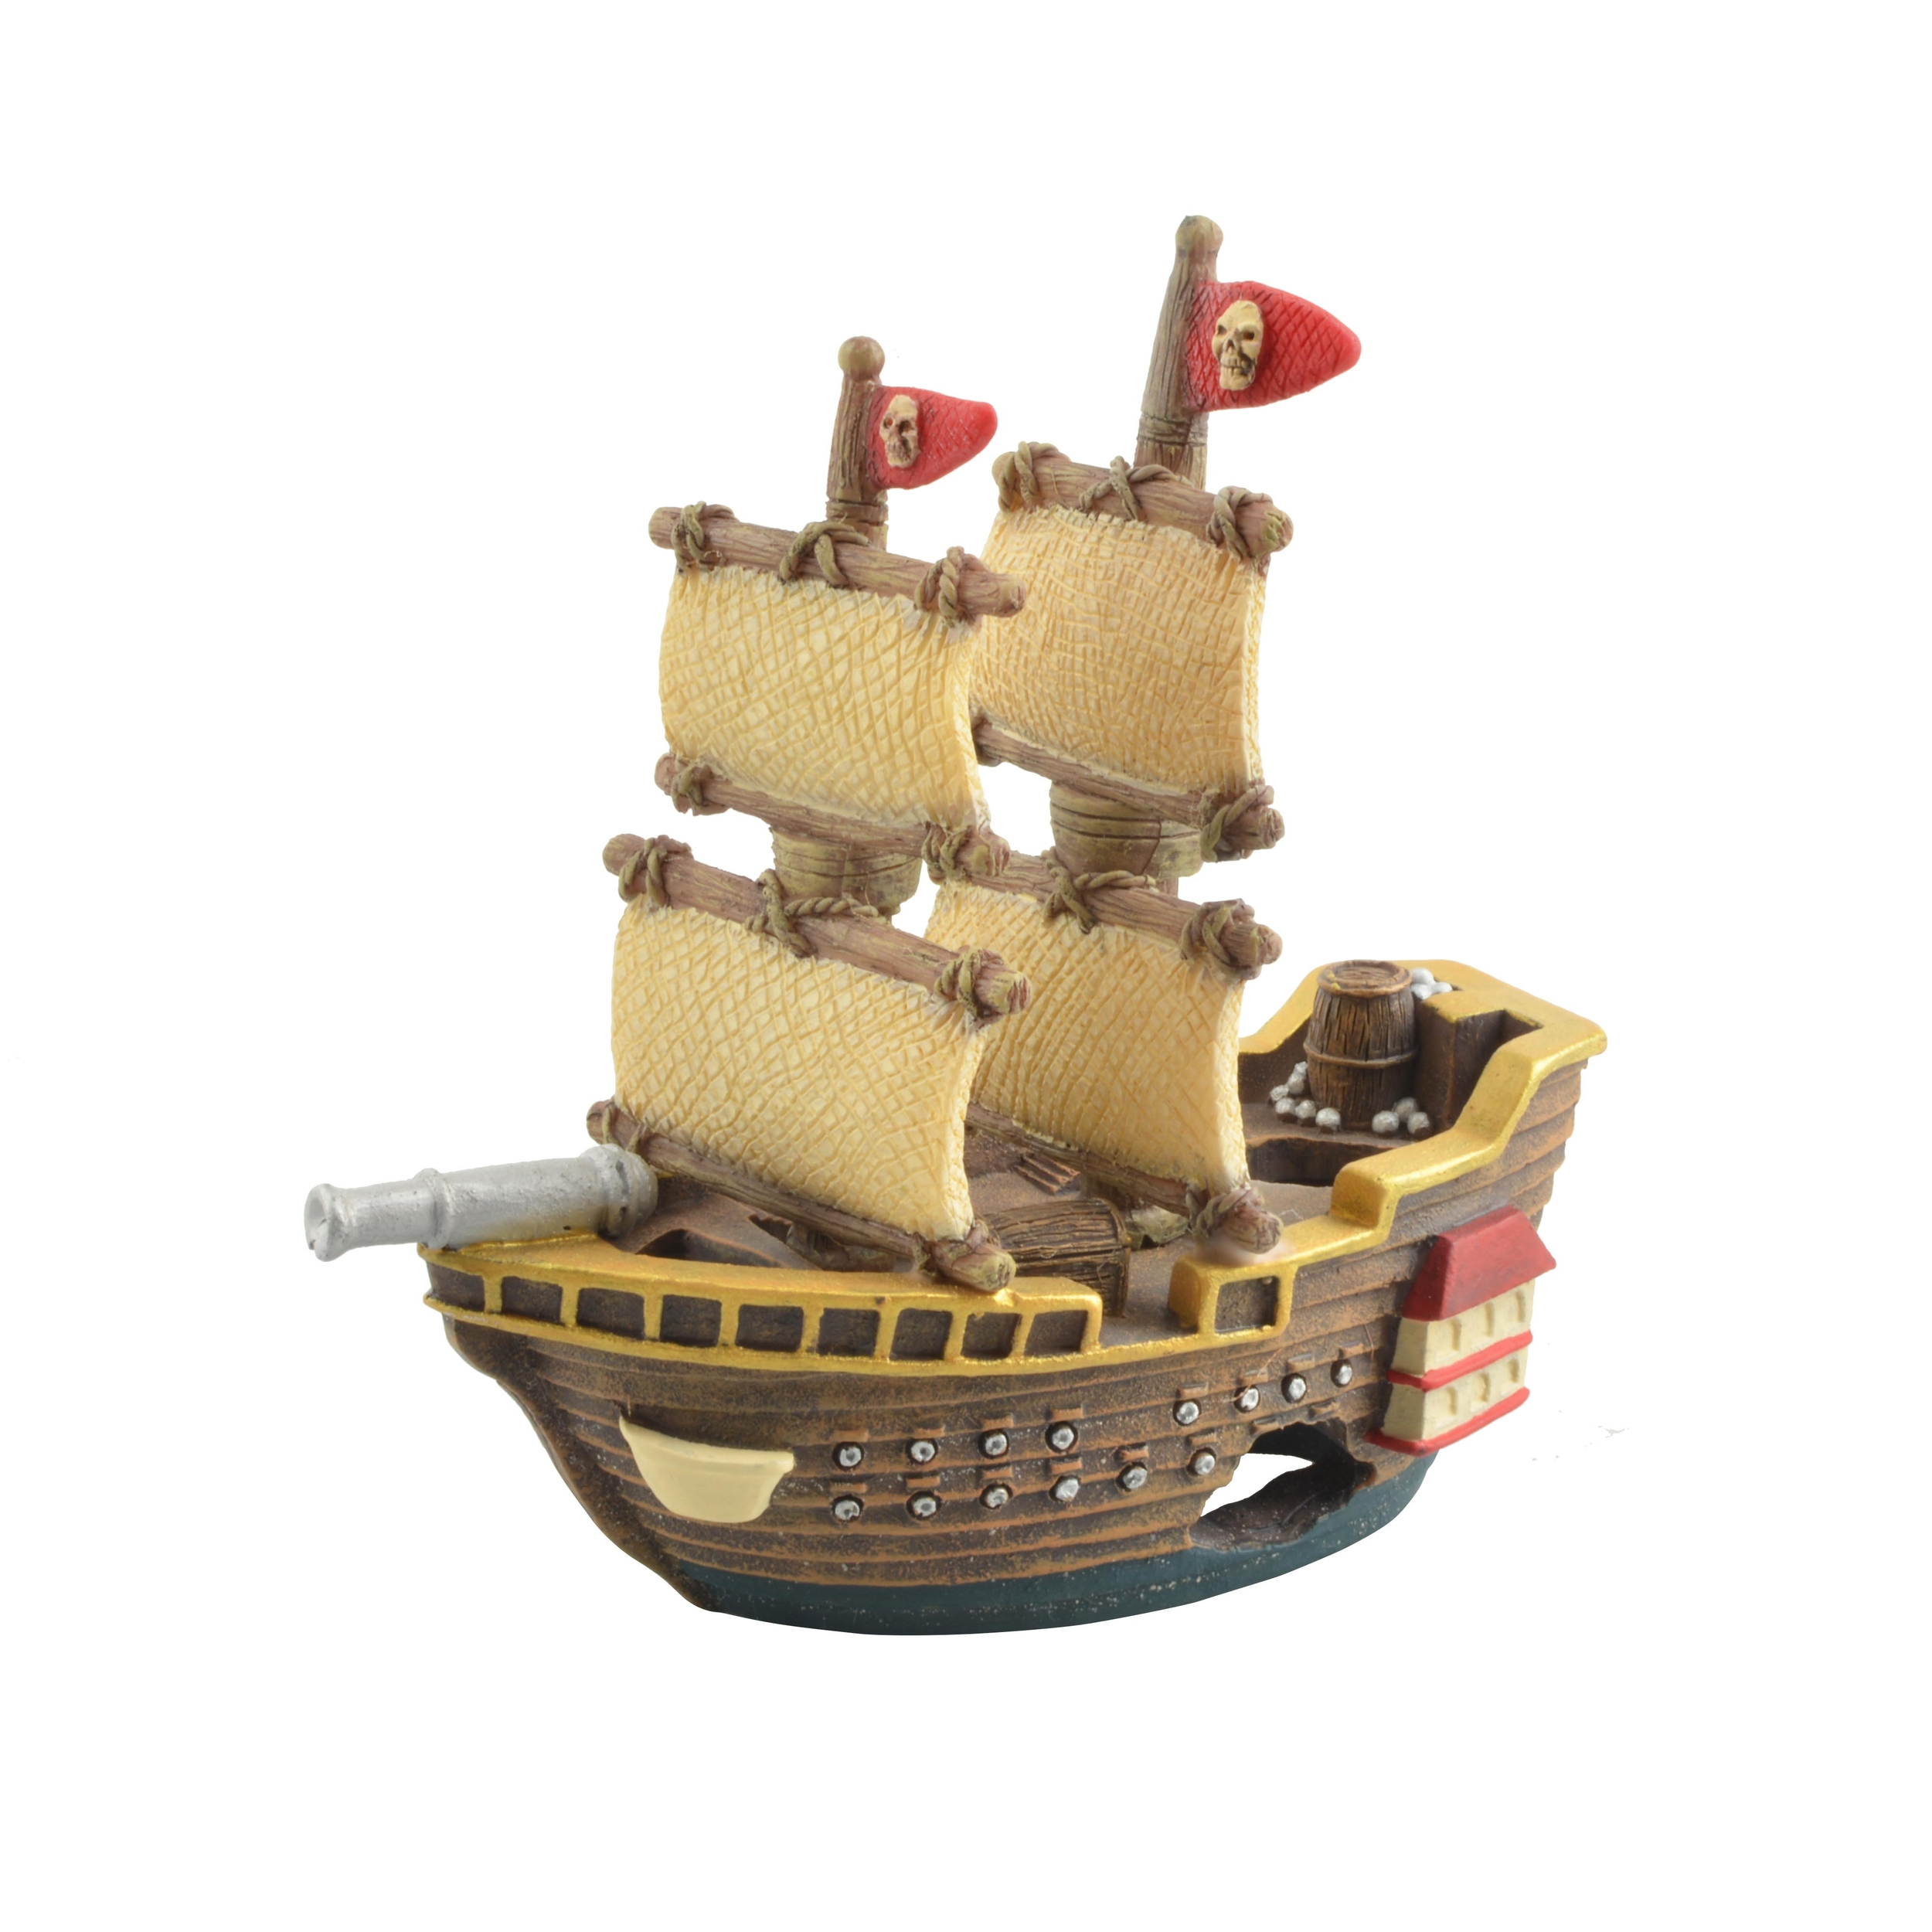 AQUAVIE Bateau Pirate Kid décoration aquarium 14 x 6 x 14 cm